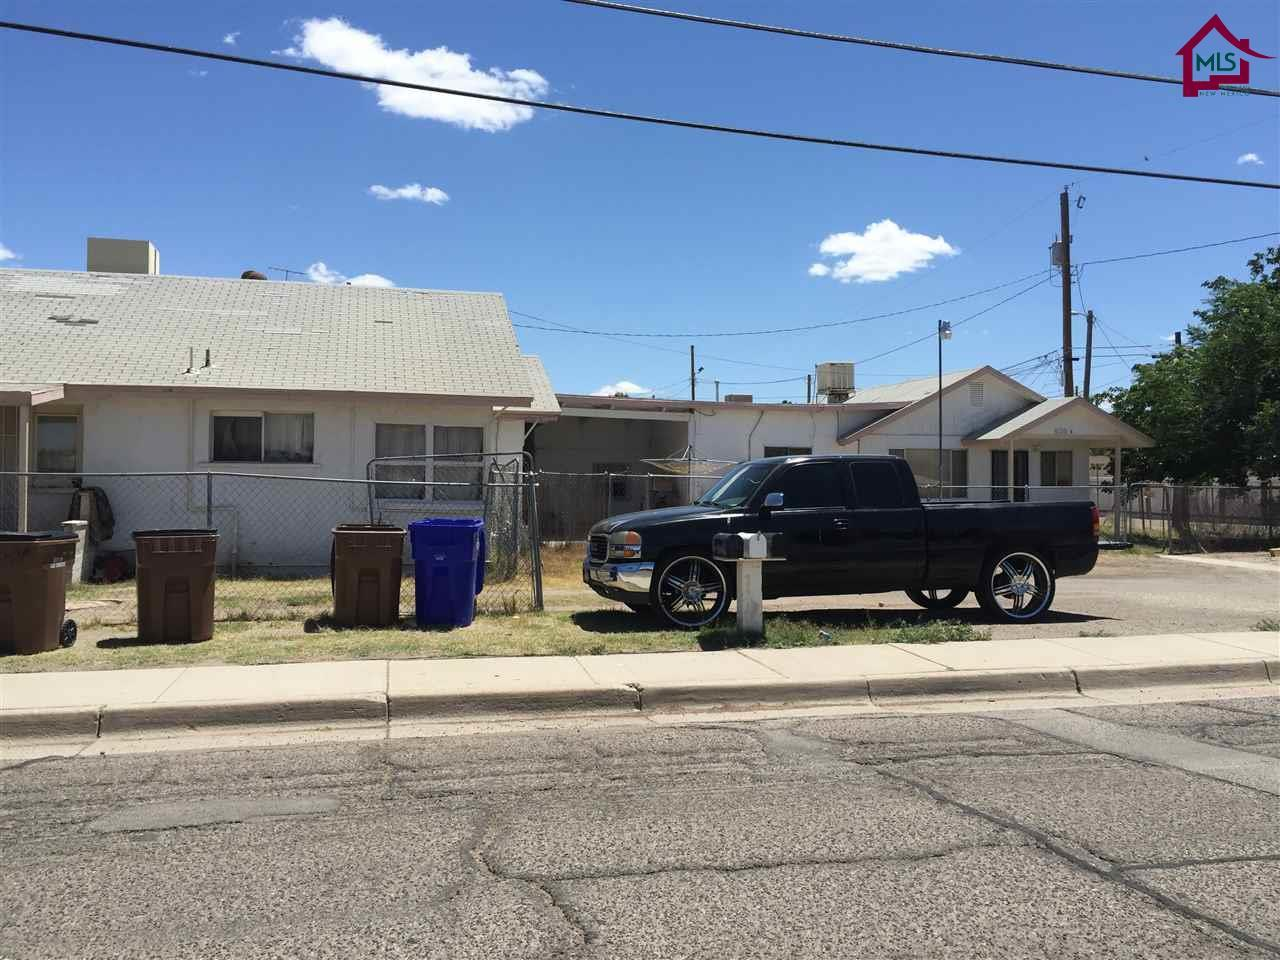 620 second street las cruces nm 88005 mls 1501552 for Home builders in las cruces nm